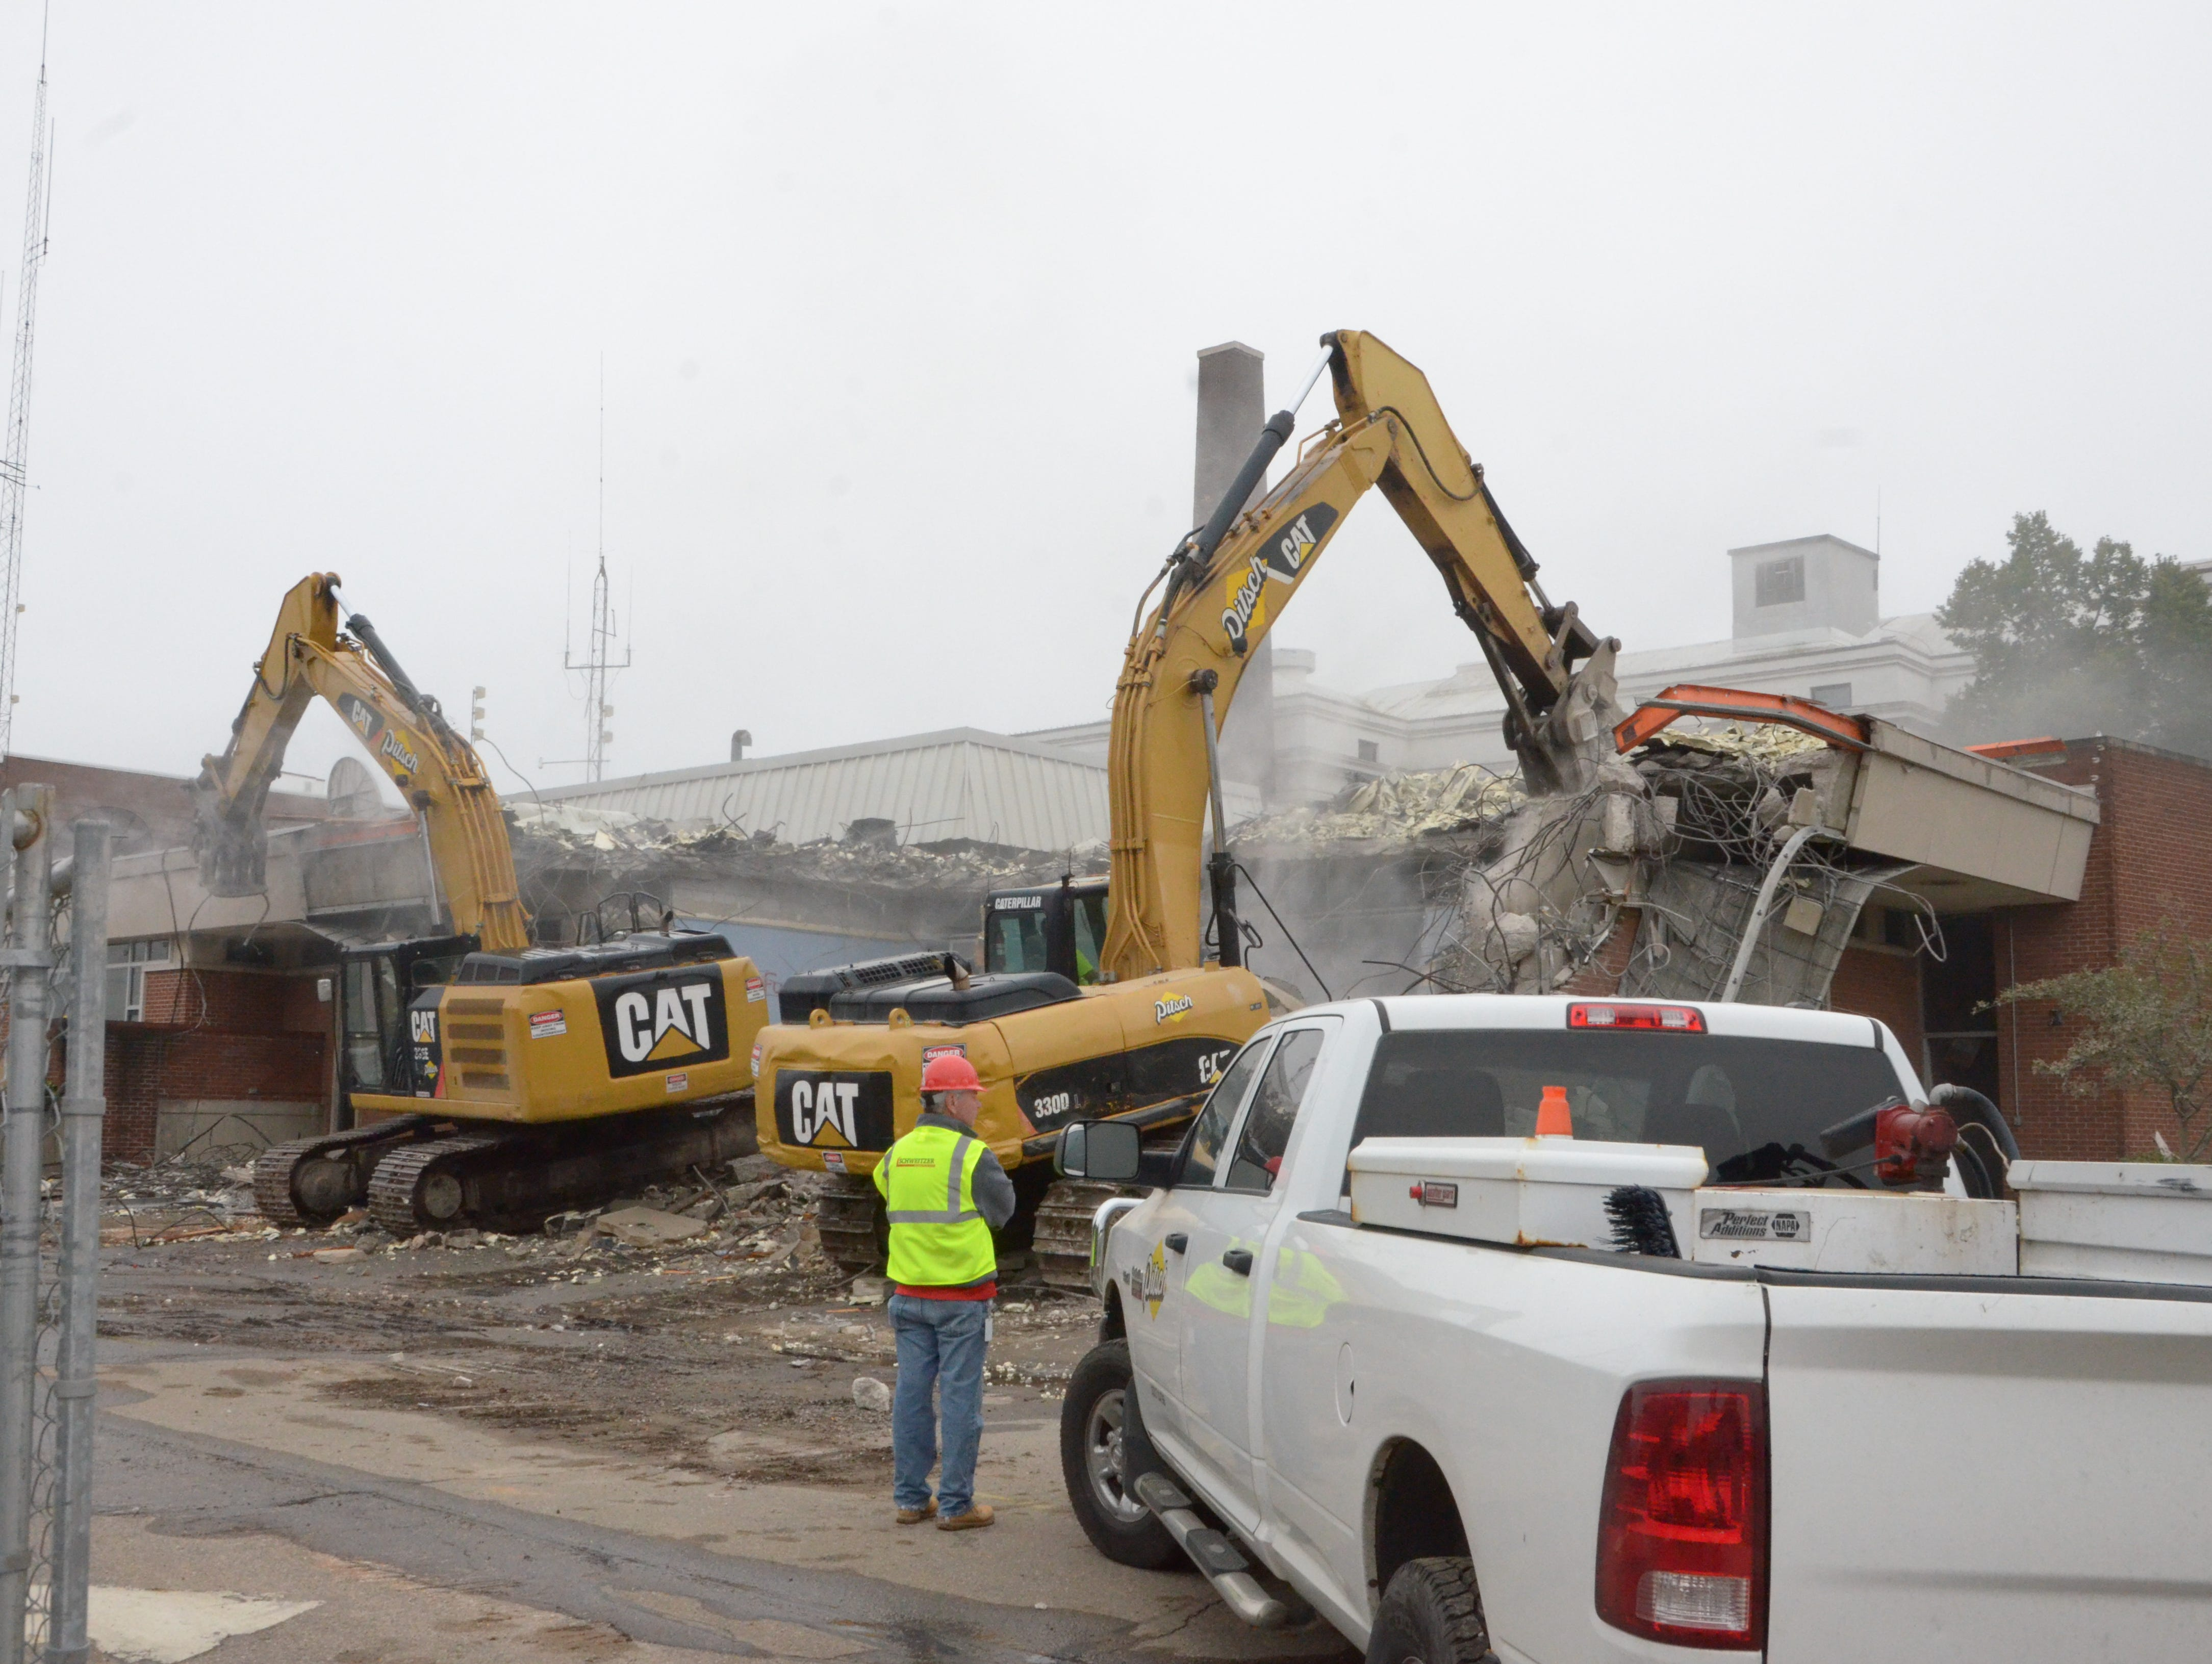 Chris Curry, Schweitzer Construction project superintendent, oversees the demolition of the old Battle Creek Police Department headquarters.